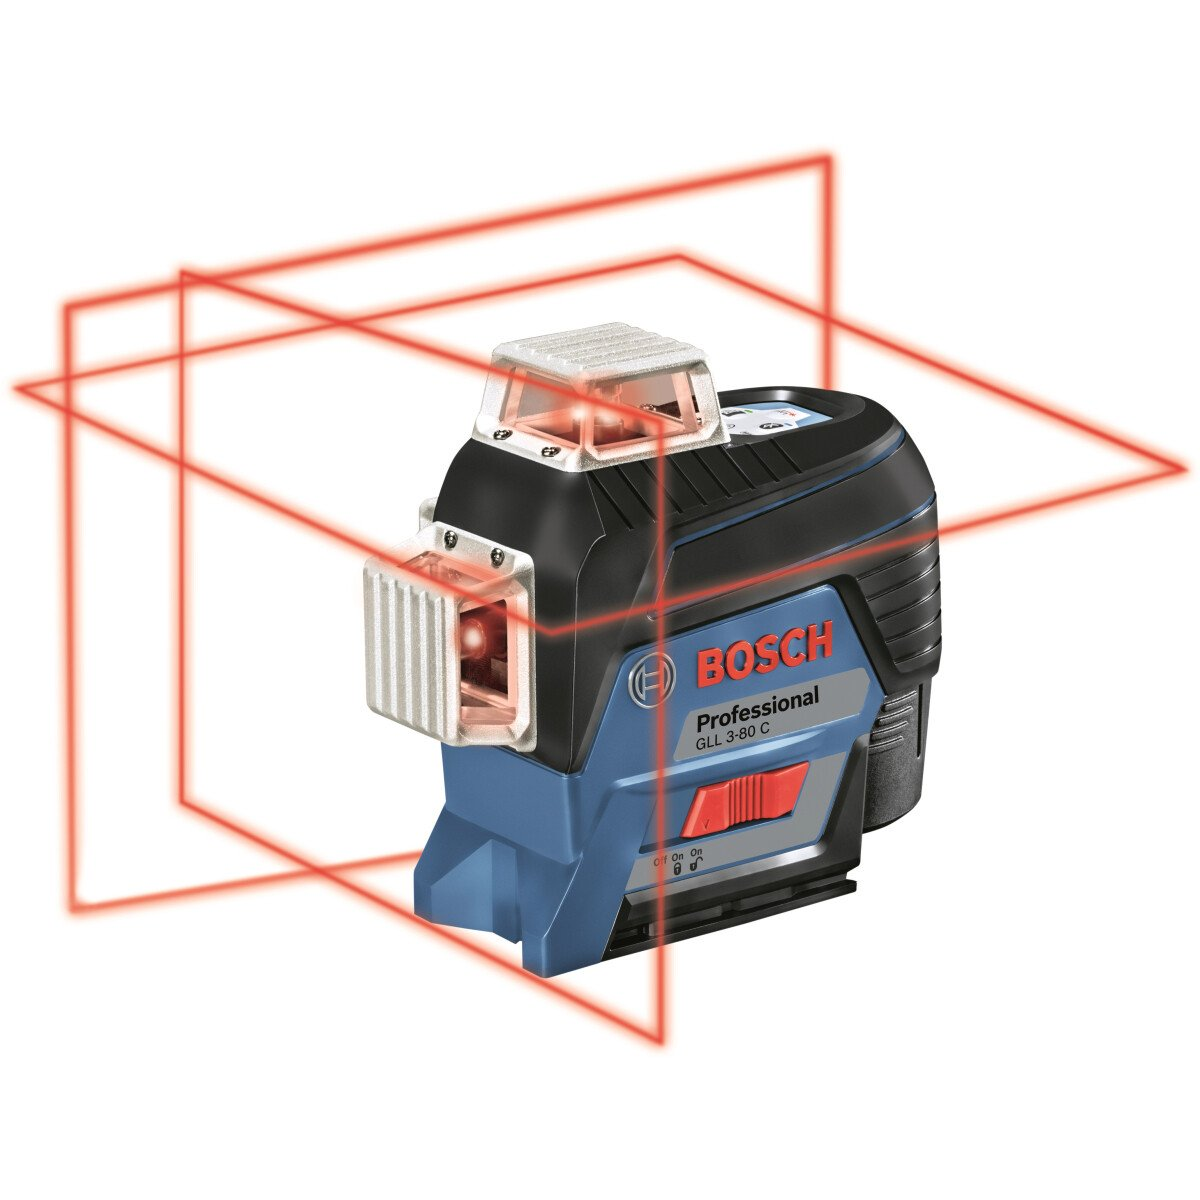 Bosch GLL 3-80 C Professional 3 Plane Connected Line Laser  in Carton